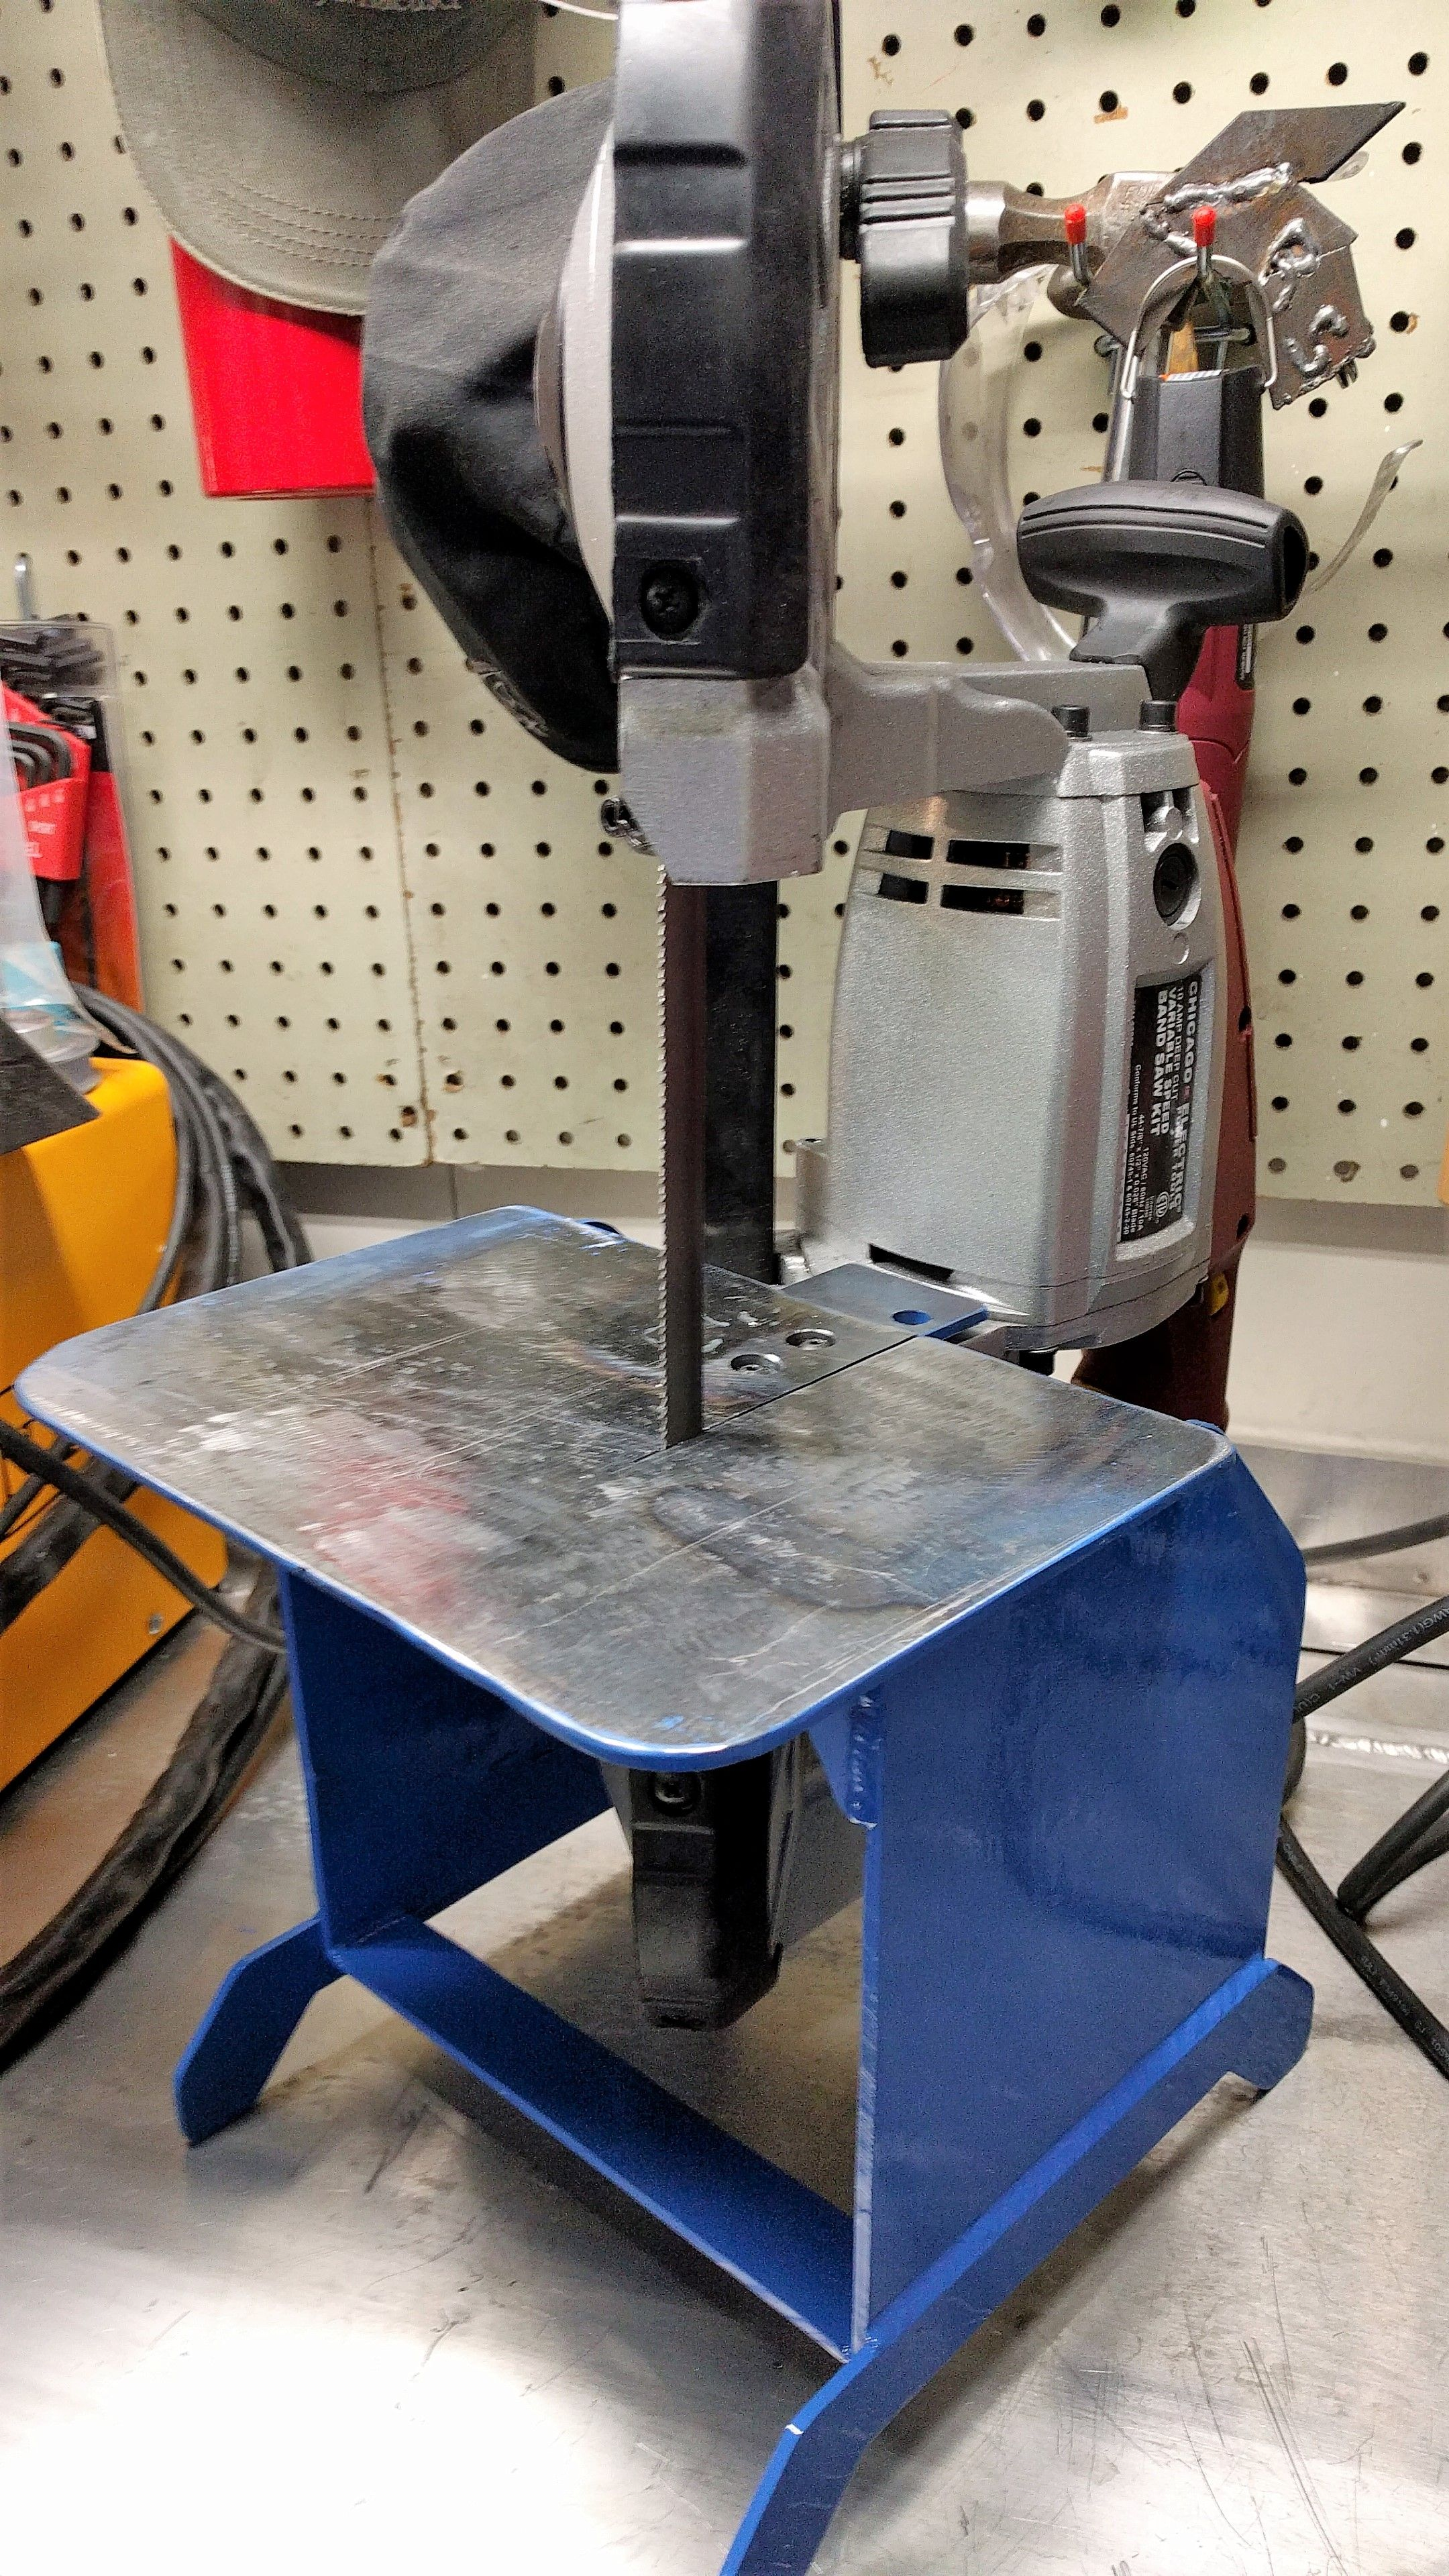 Diy Harbor Freight Portable Band Saw Stand Welding Table Welding Welding Projects